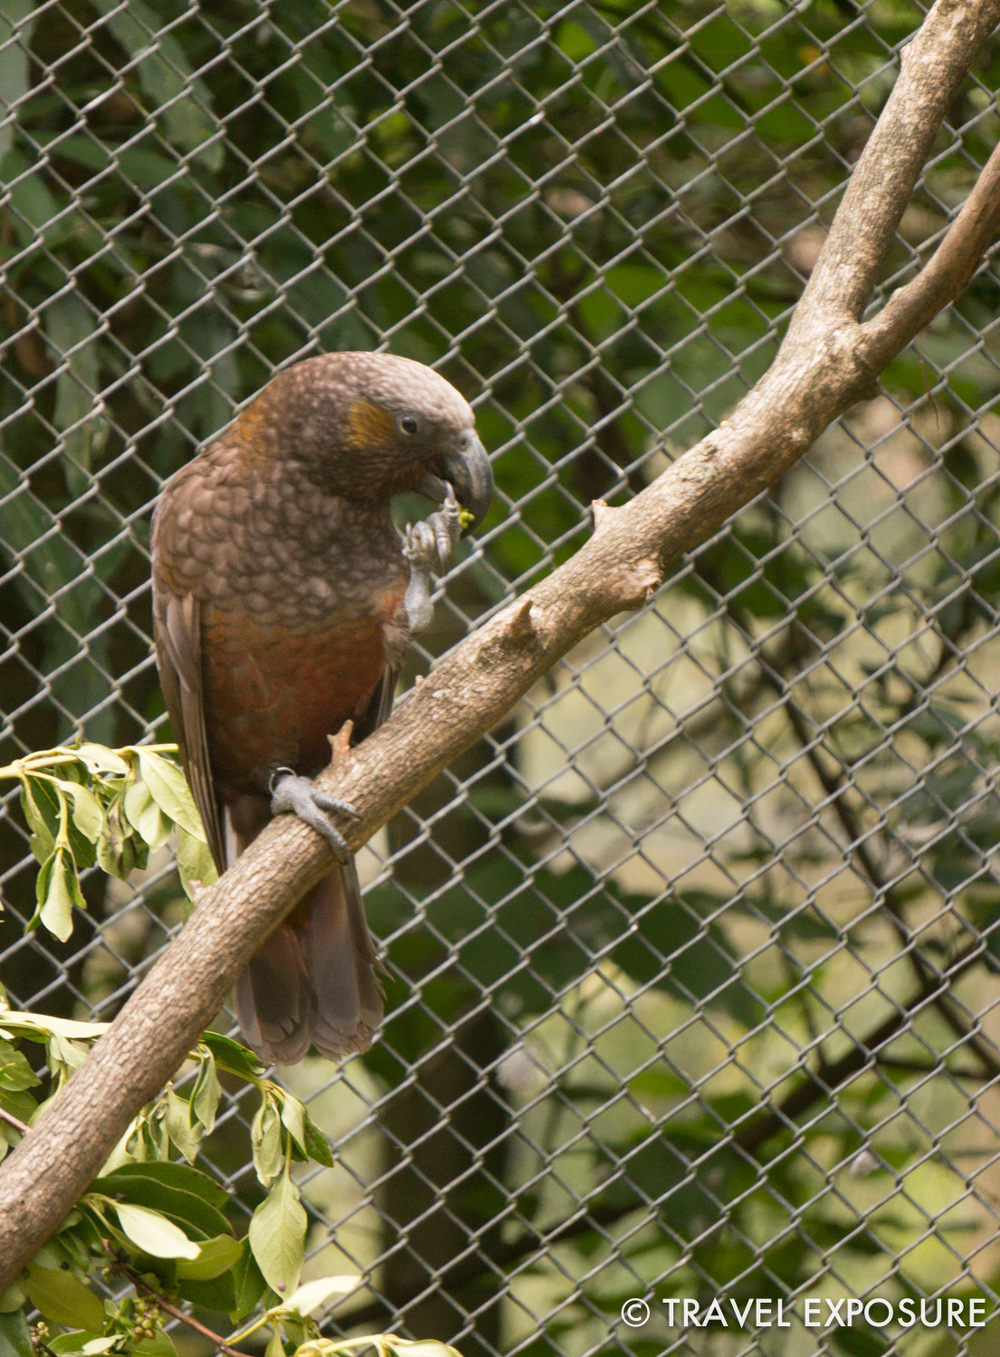 Kaka at the Otorohanga Kiwi House